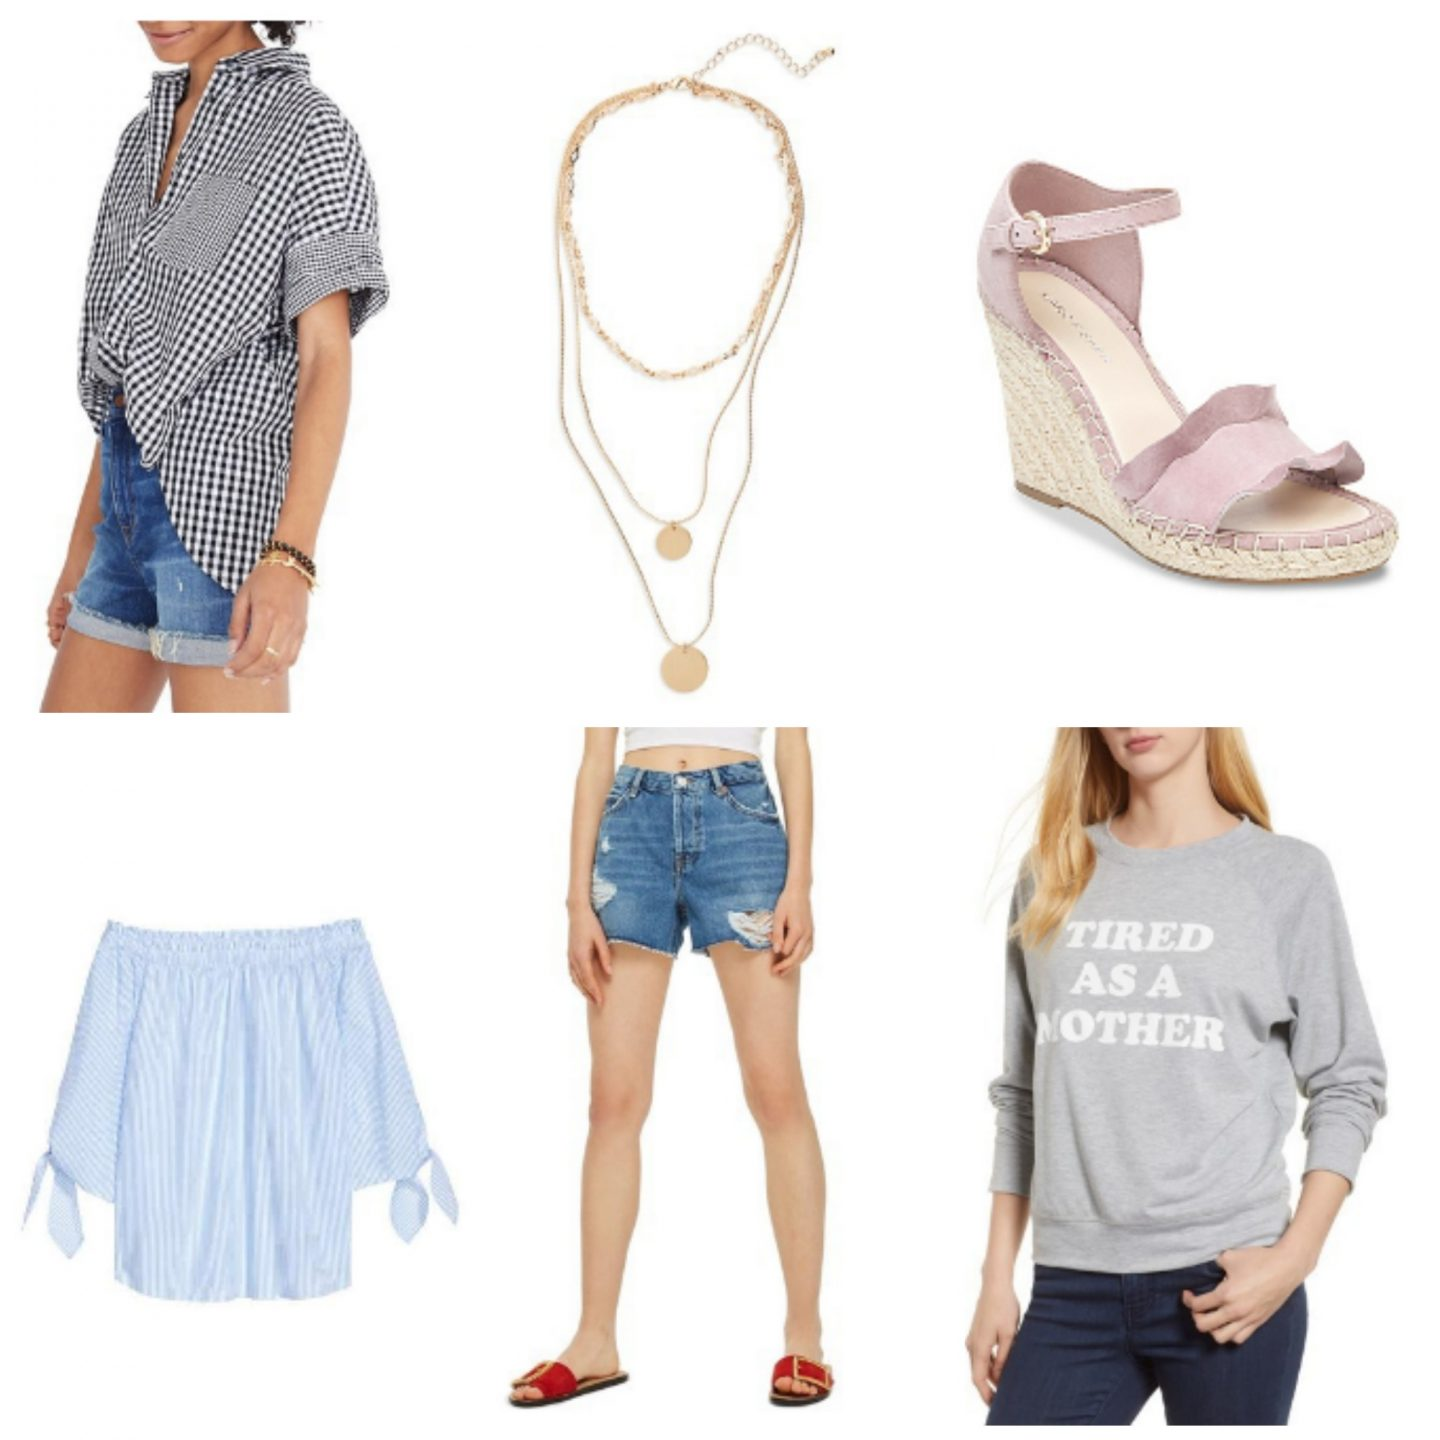 Tuesday's Cravings: Casual Finds